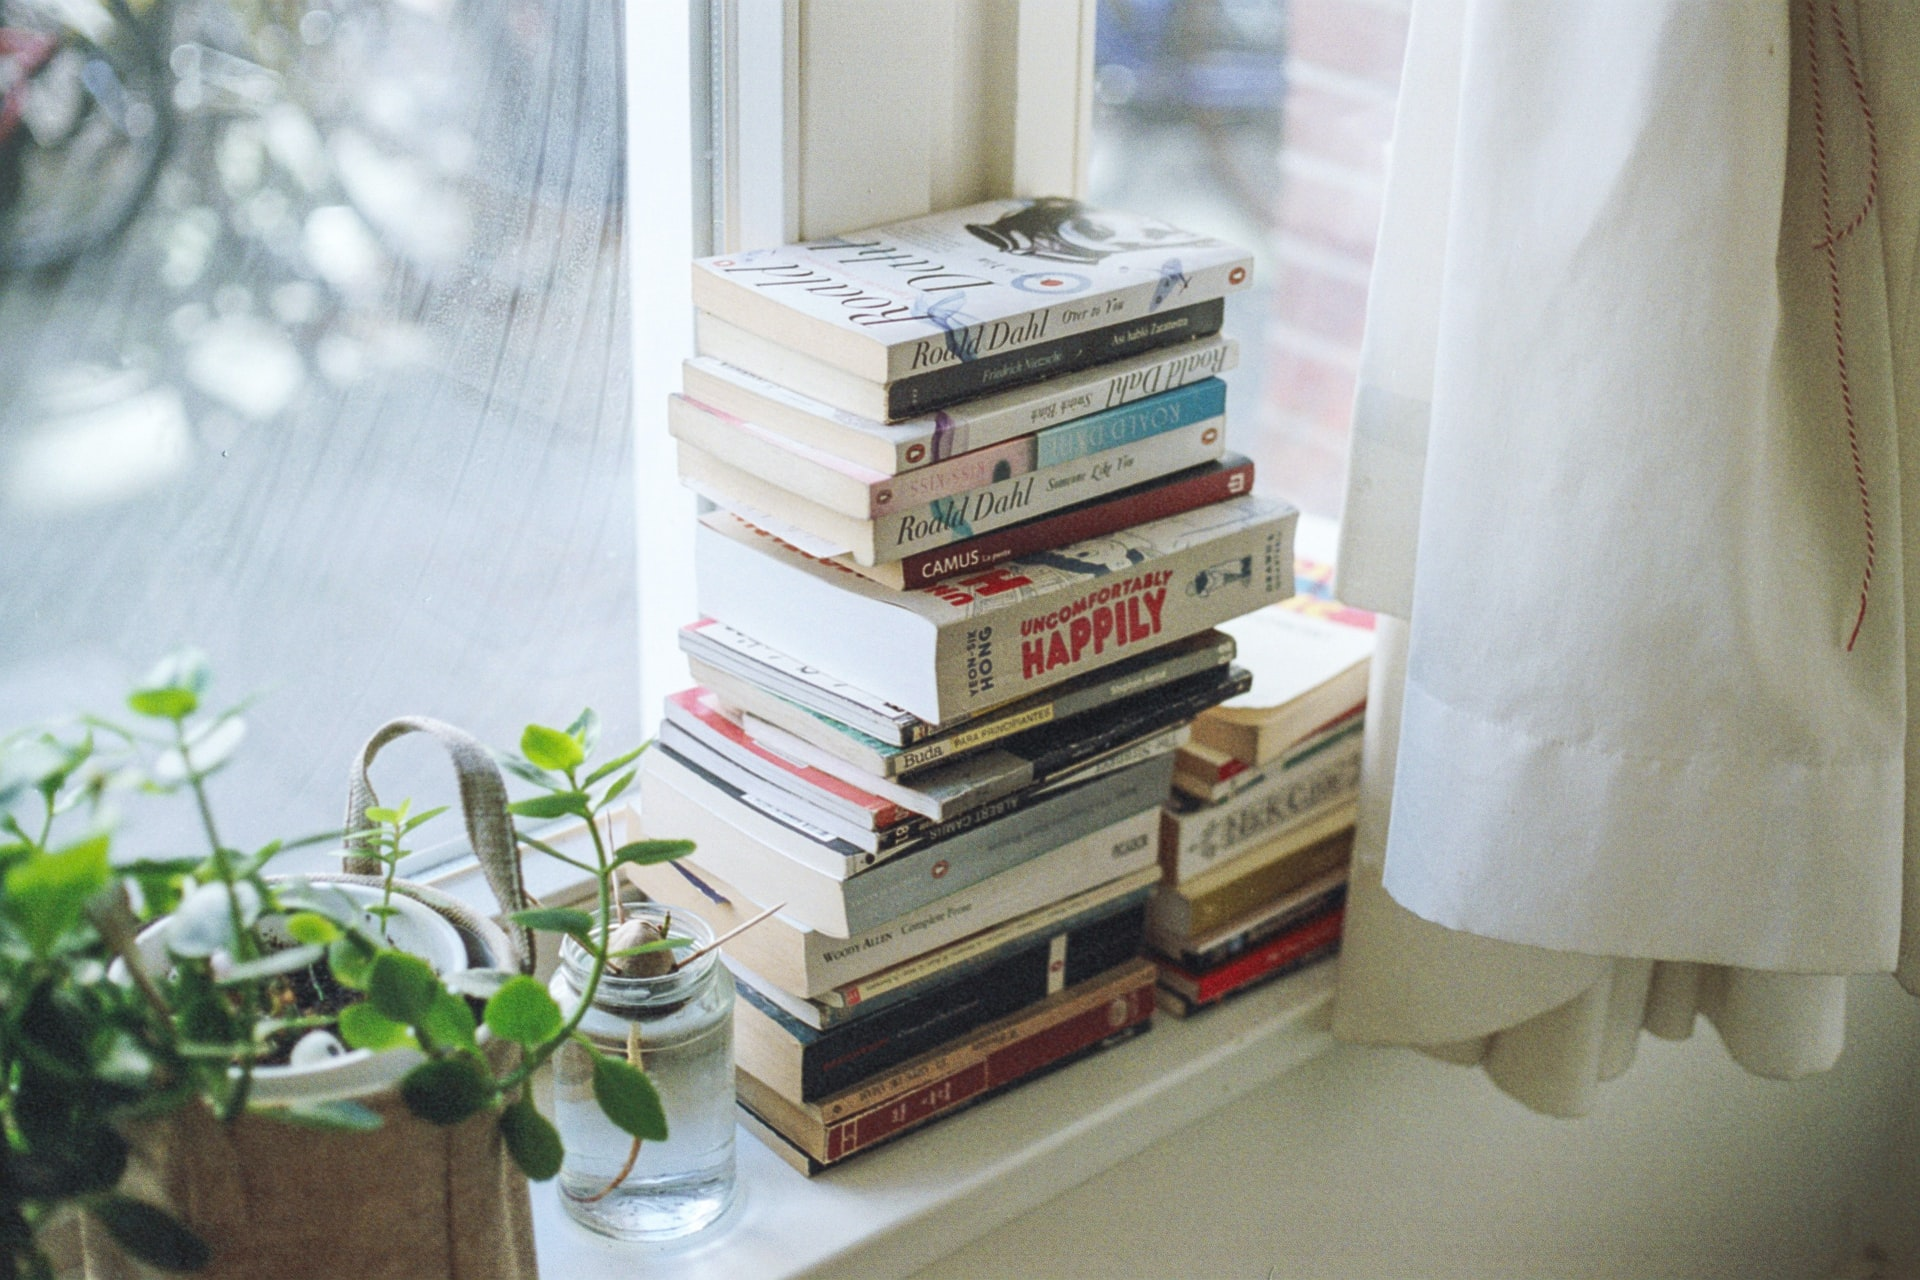 Books of assorted titles stacked on a windowsill next to a houseplant. Photo courtesy of Florencia Viadana on Unsplash.